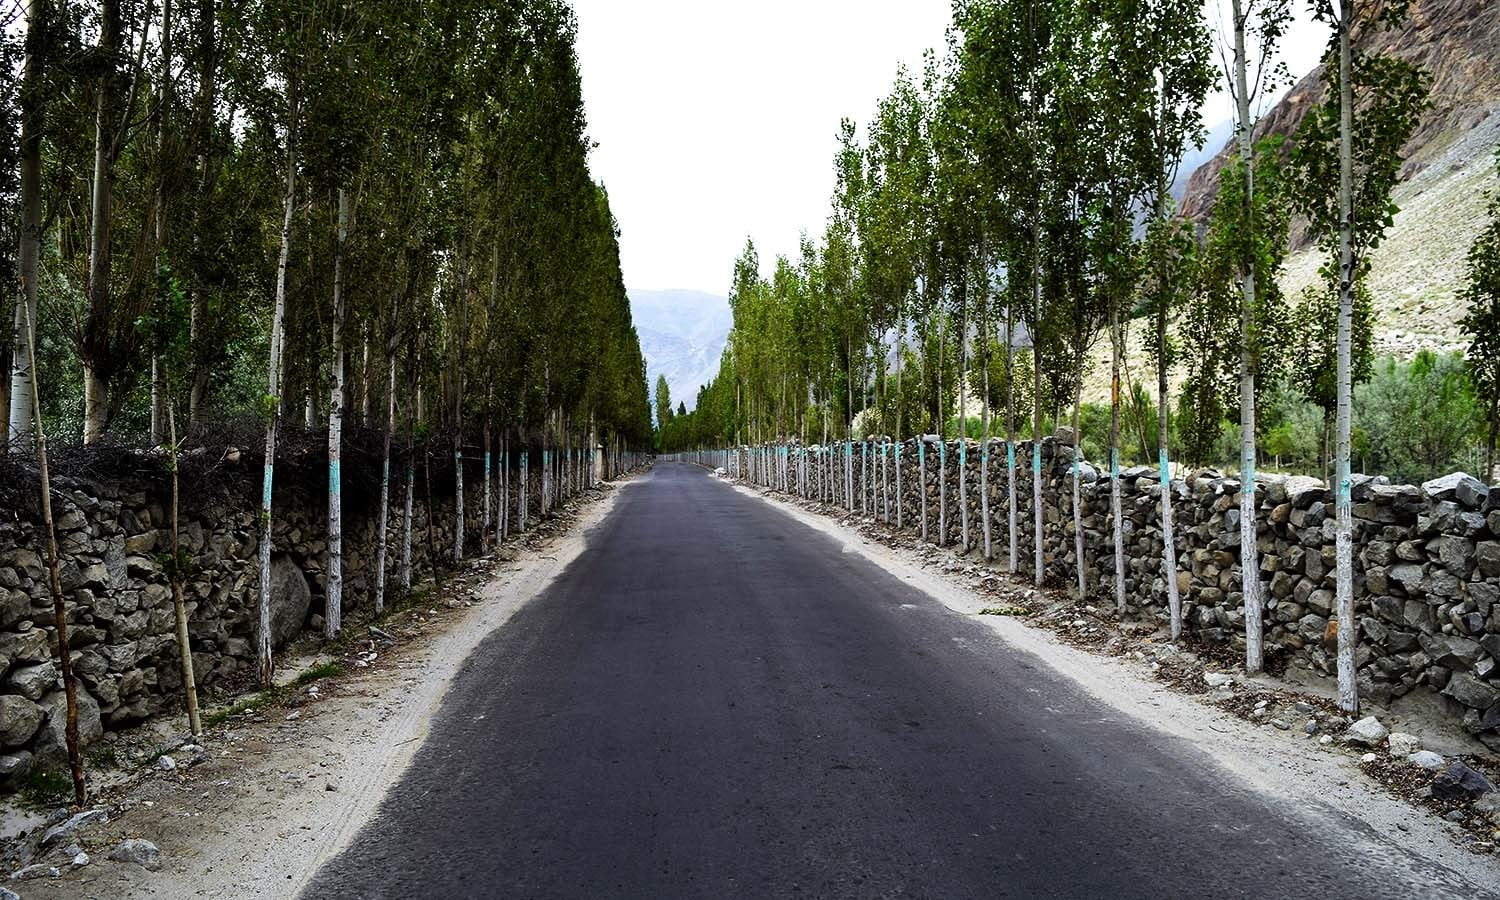 The road to Shigar.